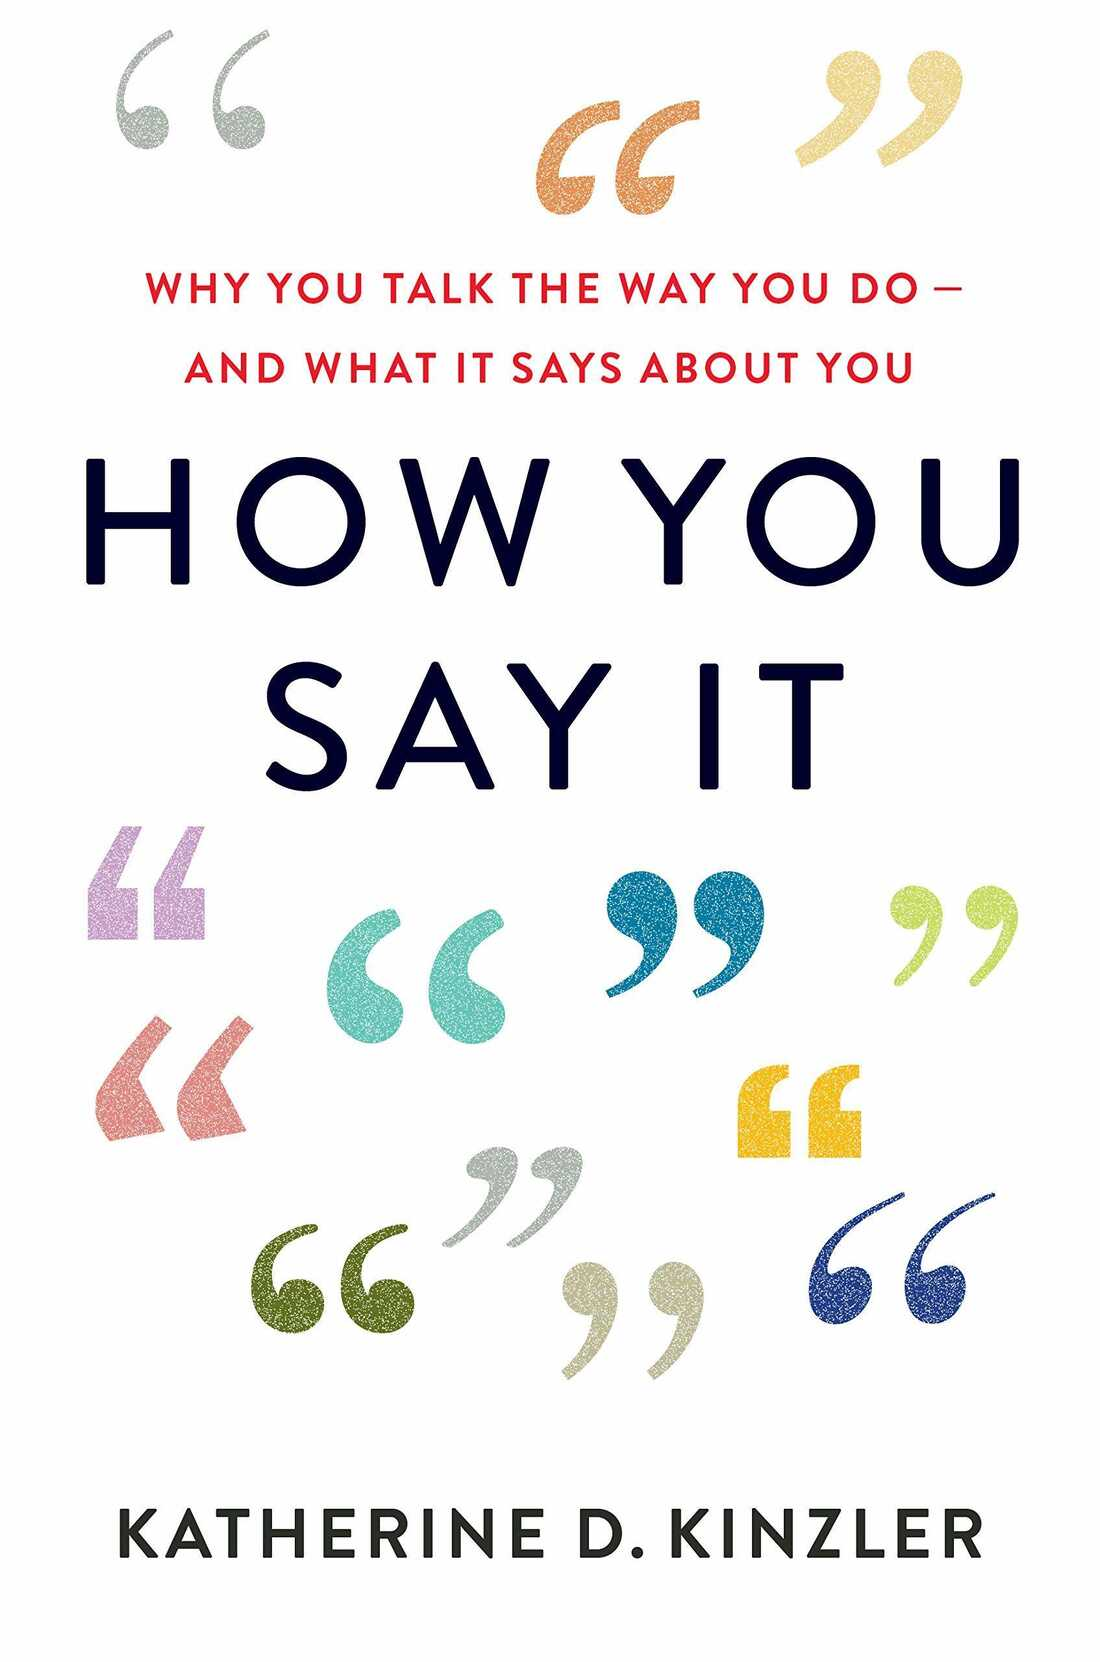 How You Say It, by Katherine D. Kinzler